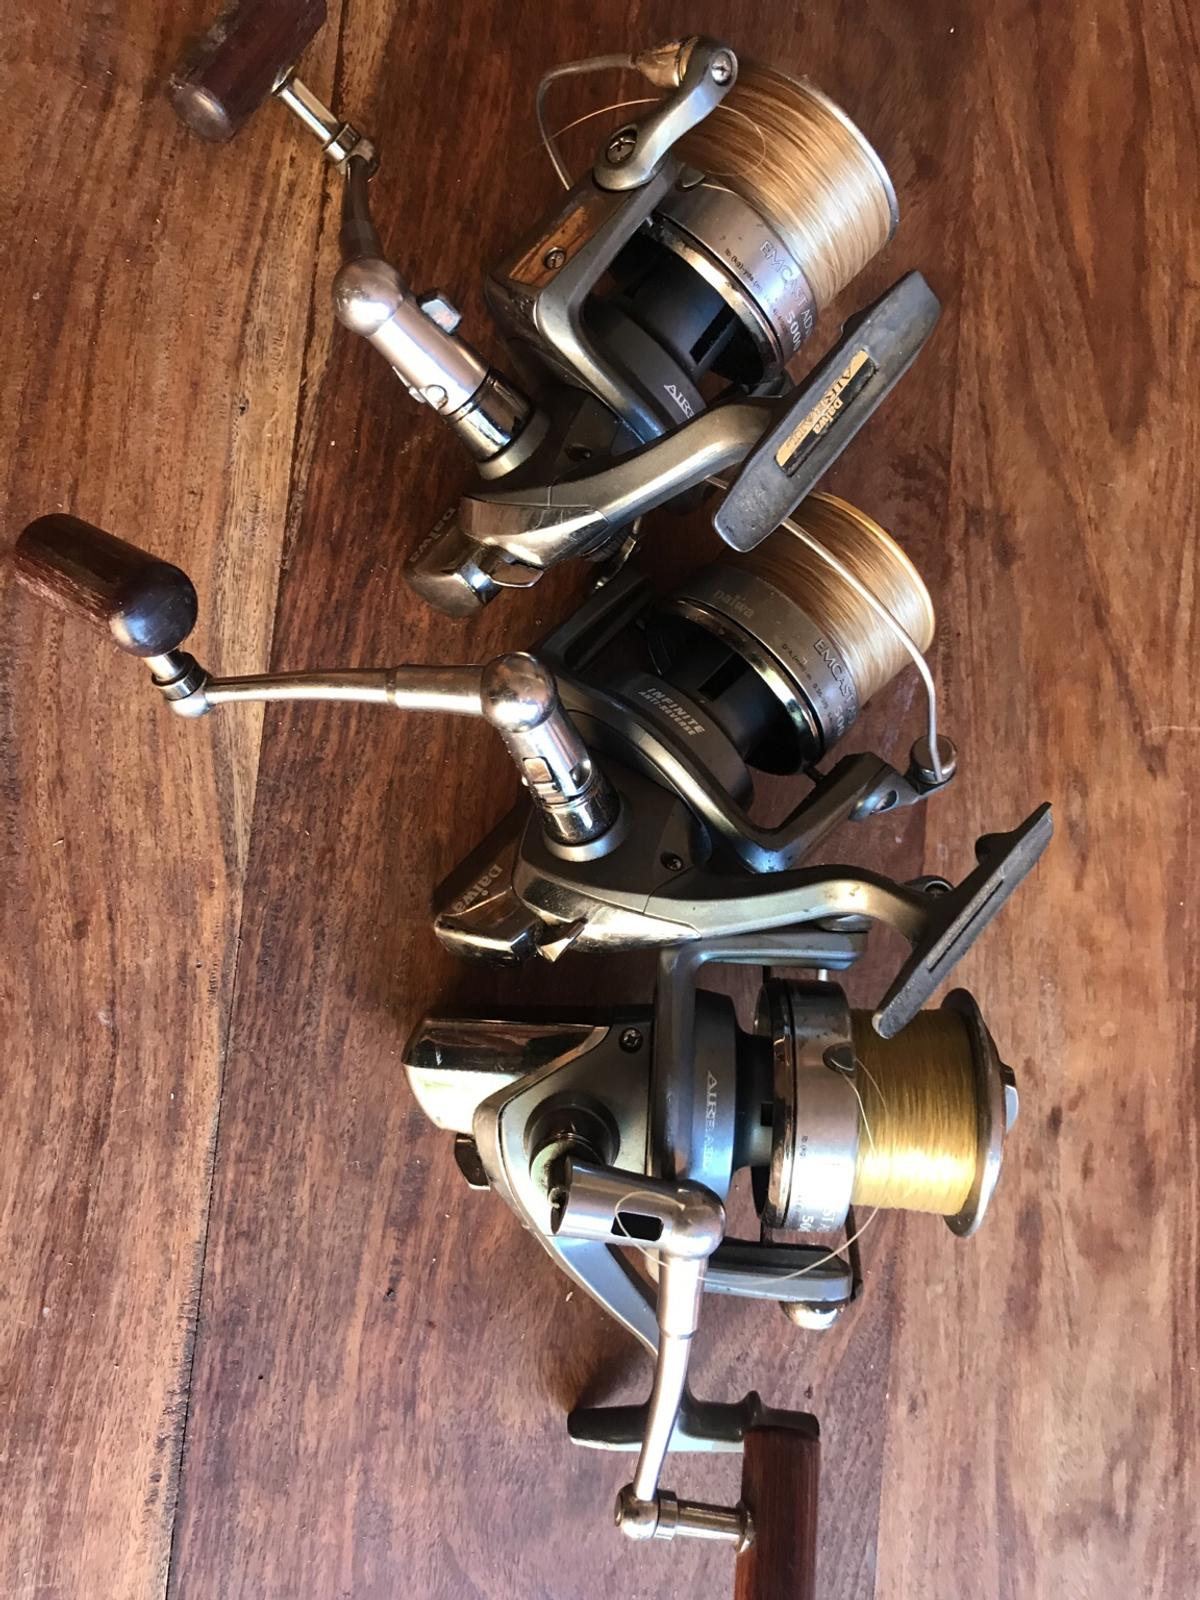 Three diawa reels carp fishing